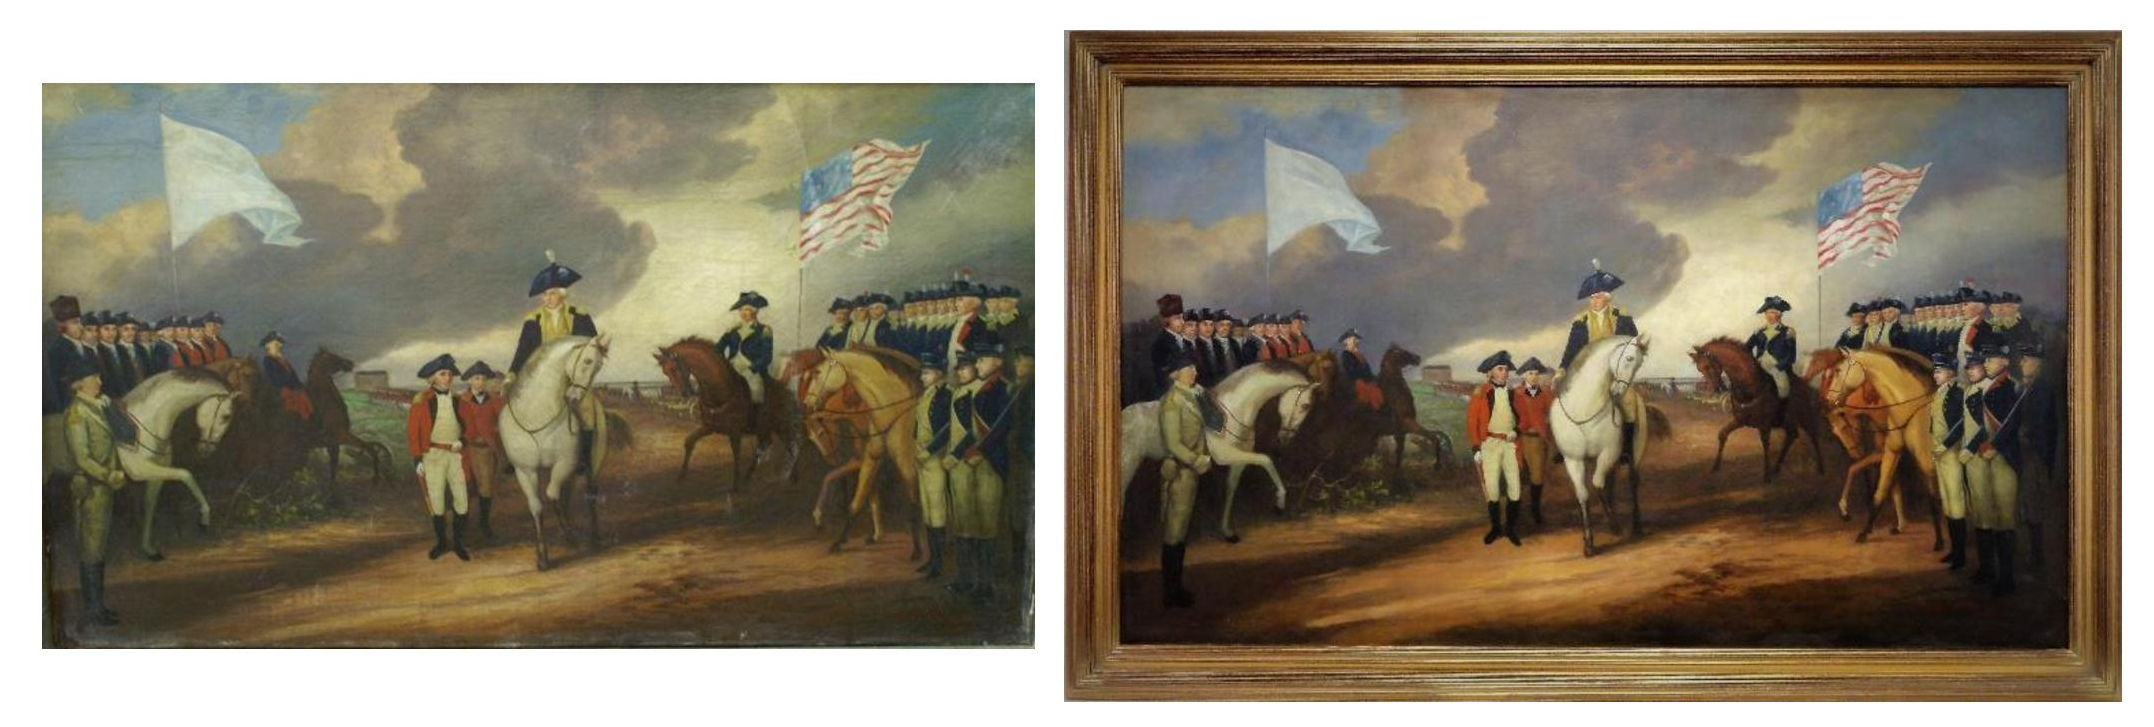 Custom Picture Frames and Document Framing | Old World Restorations